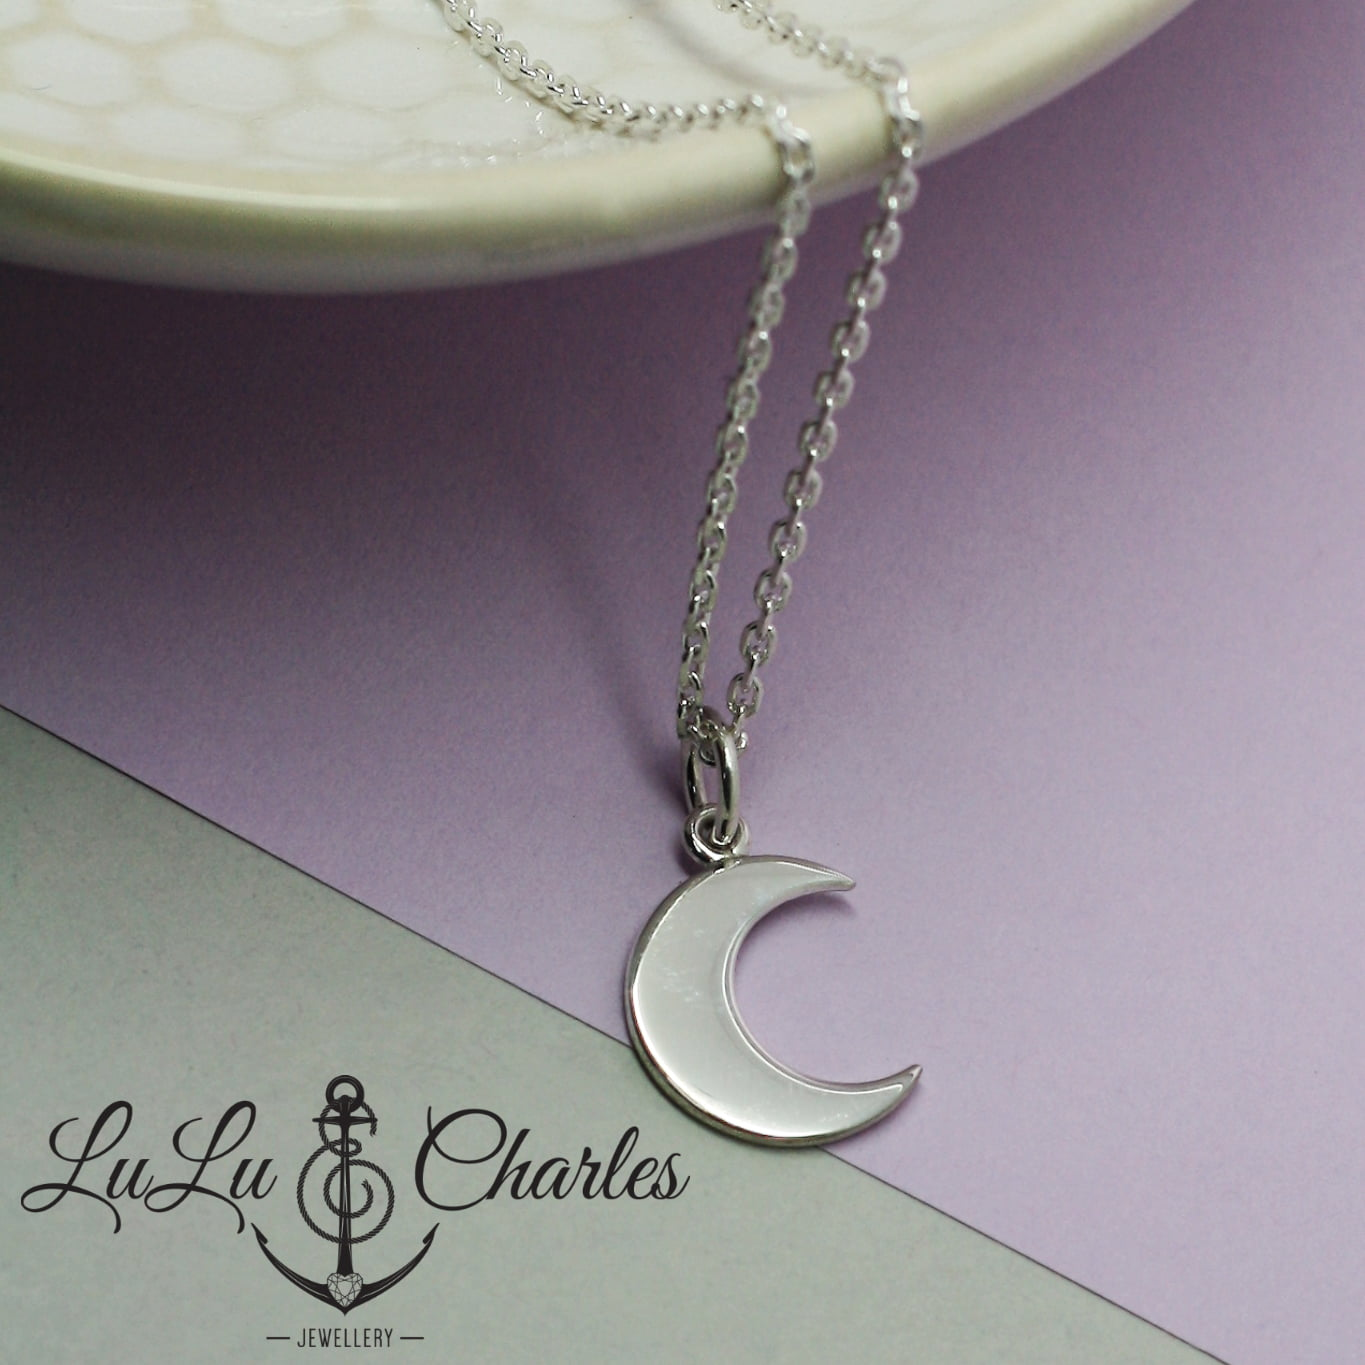 Handmade Sterling Silver Moon Charm Necklace